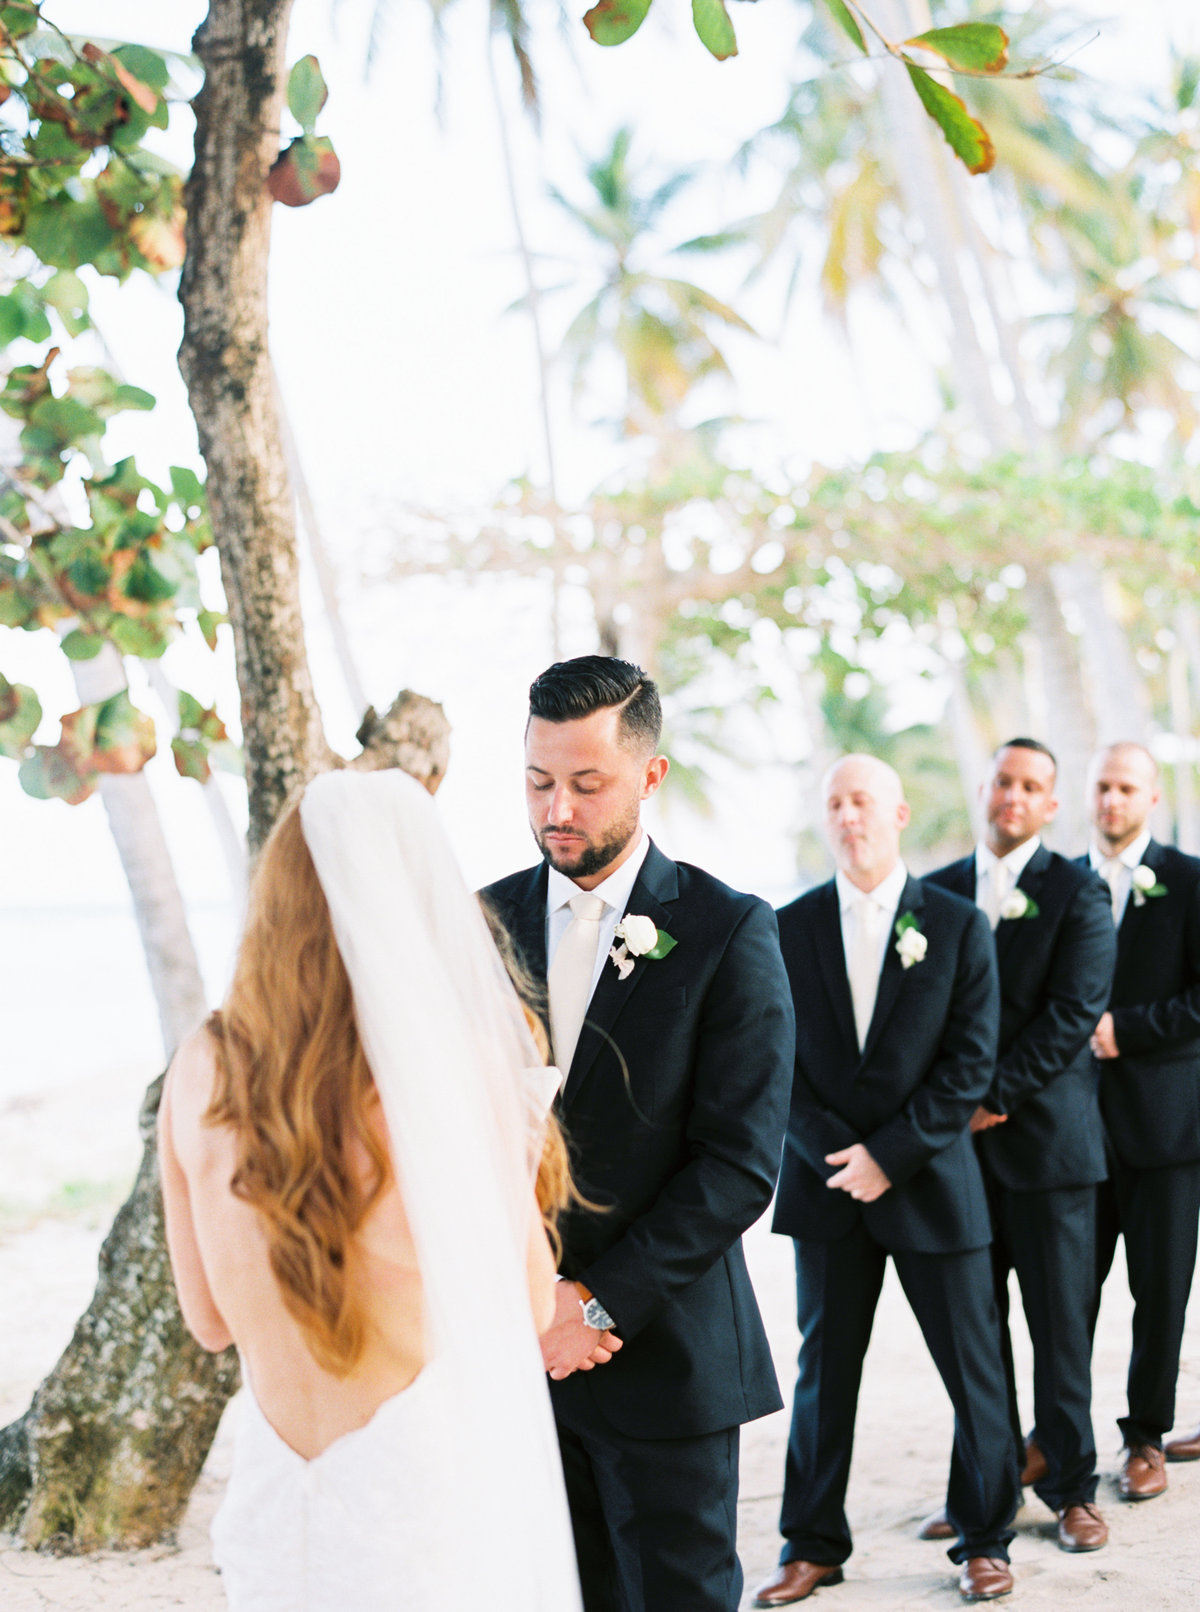 Dominican Republic Wedding - Mary Claire Photography-2